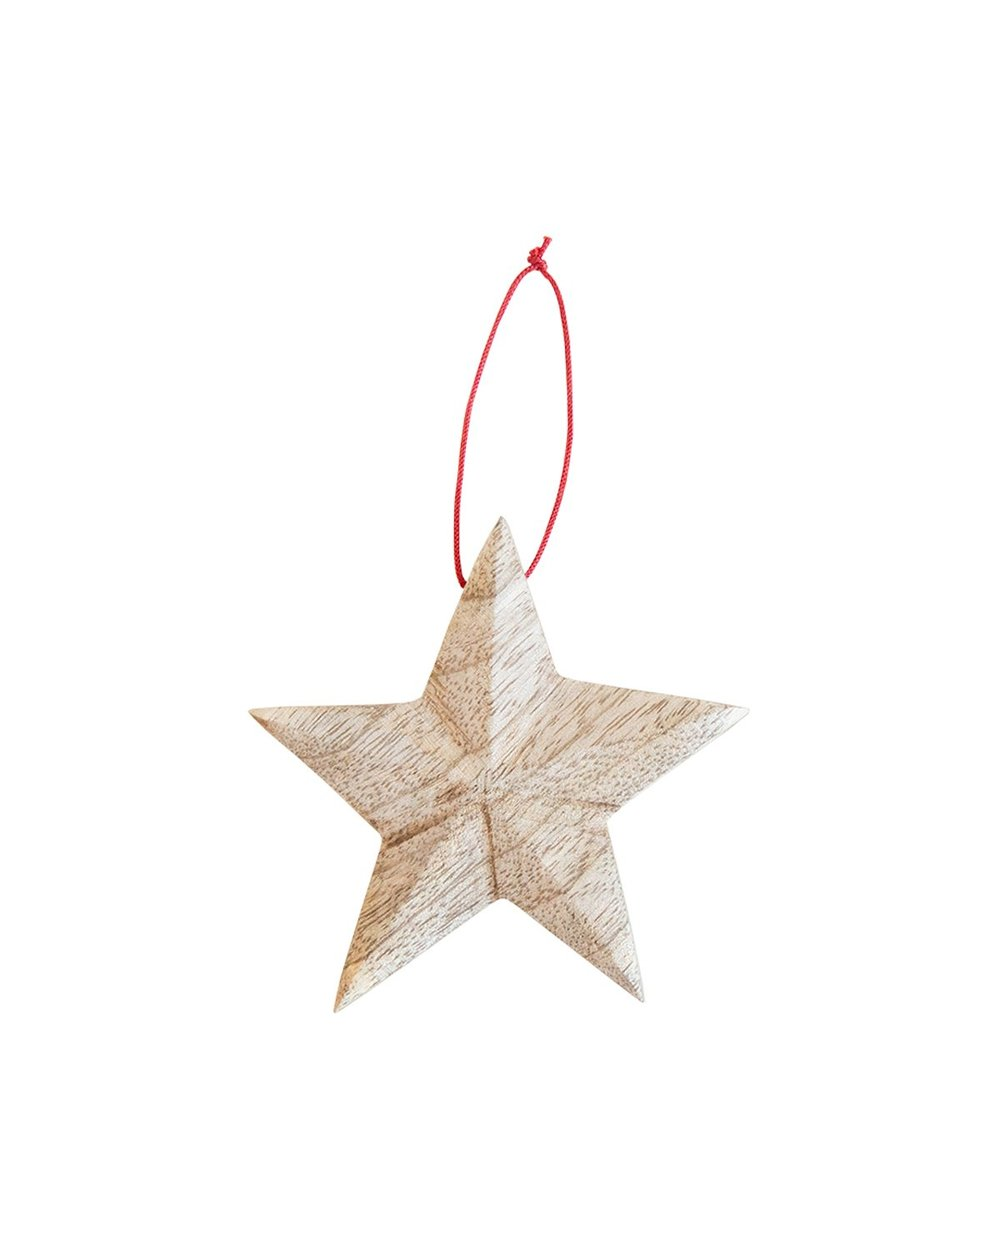 Wooden_Star_Ornaments_2.jpg